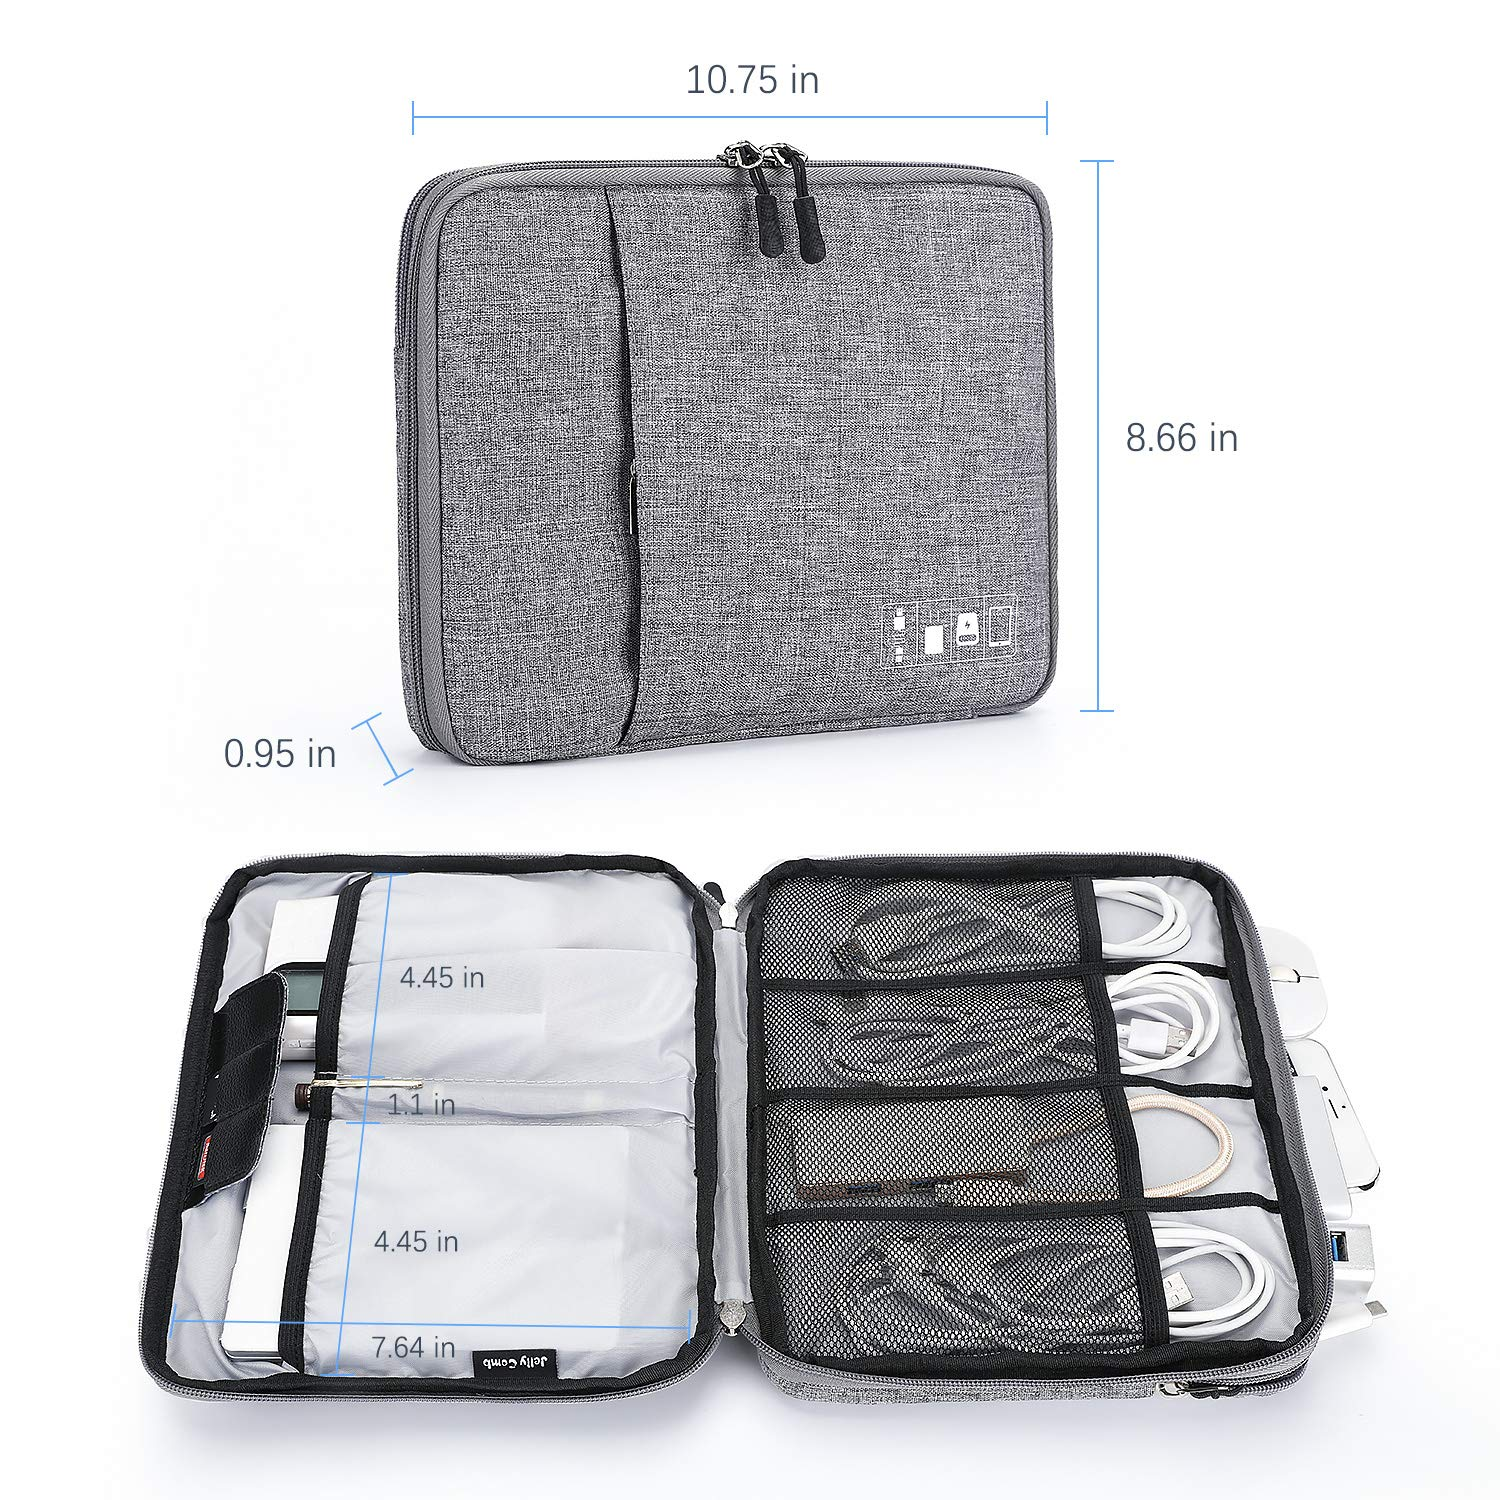 Up to 11 and More- Power Bank Jelly Comb Electronics Organizer Travel Accessories Cord Organizer Cable Storage Bag for Charging Cable Cable Organizer Bag Black Tablet